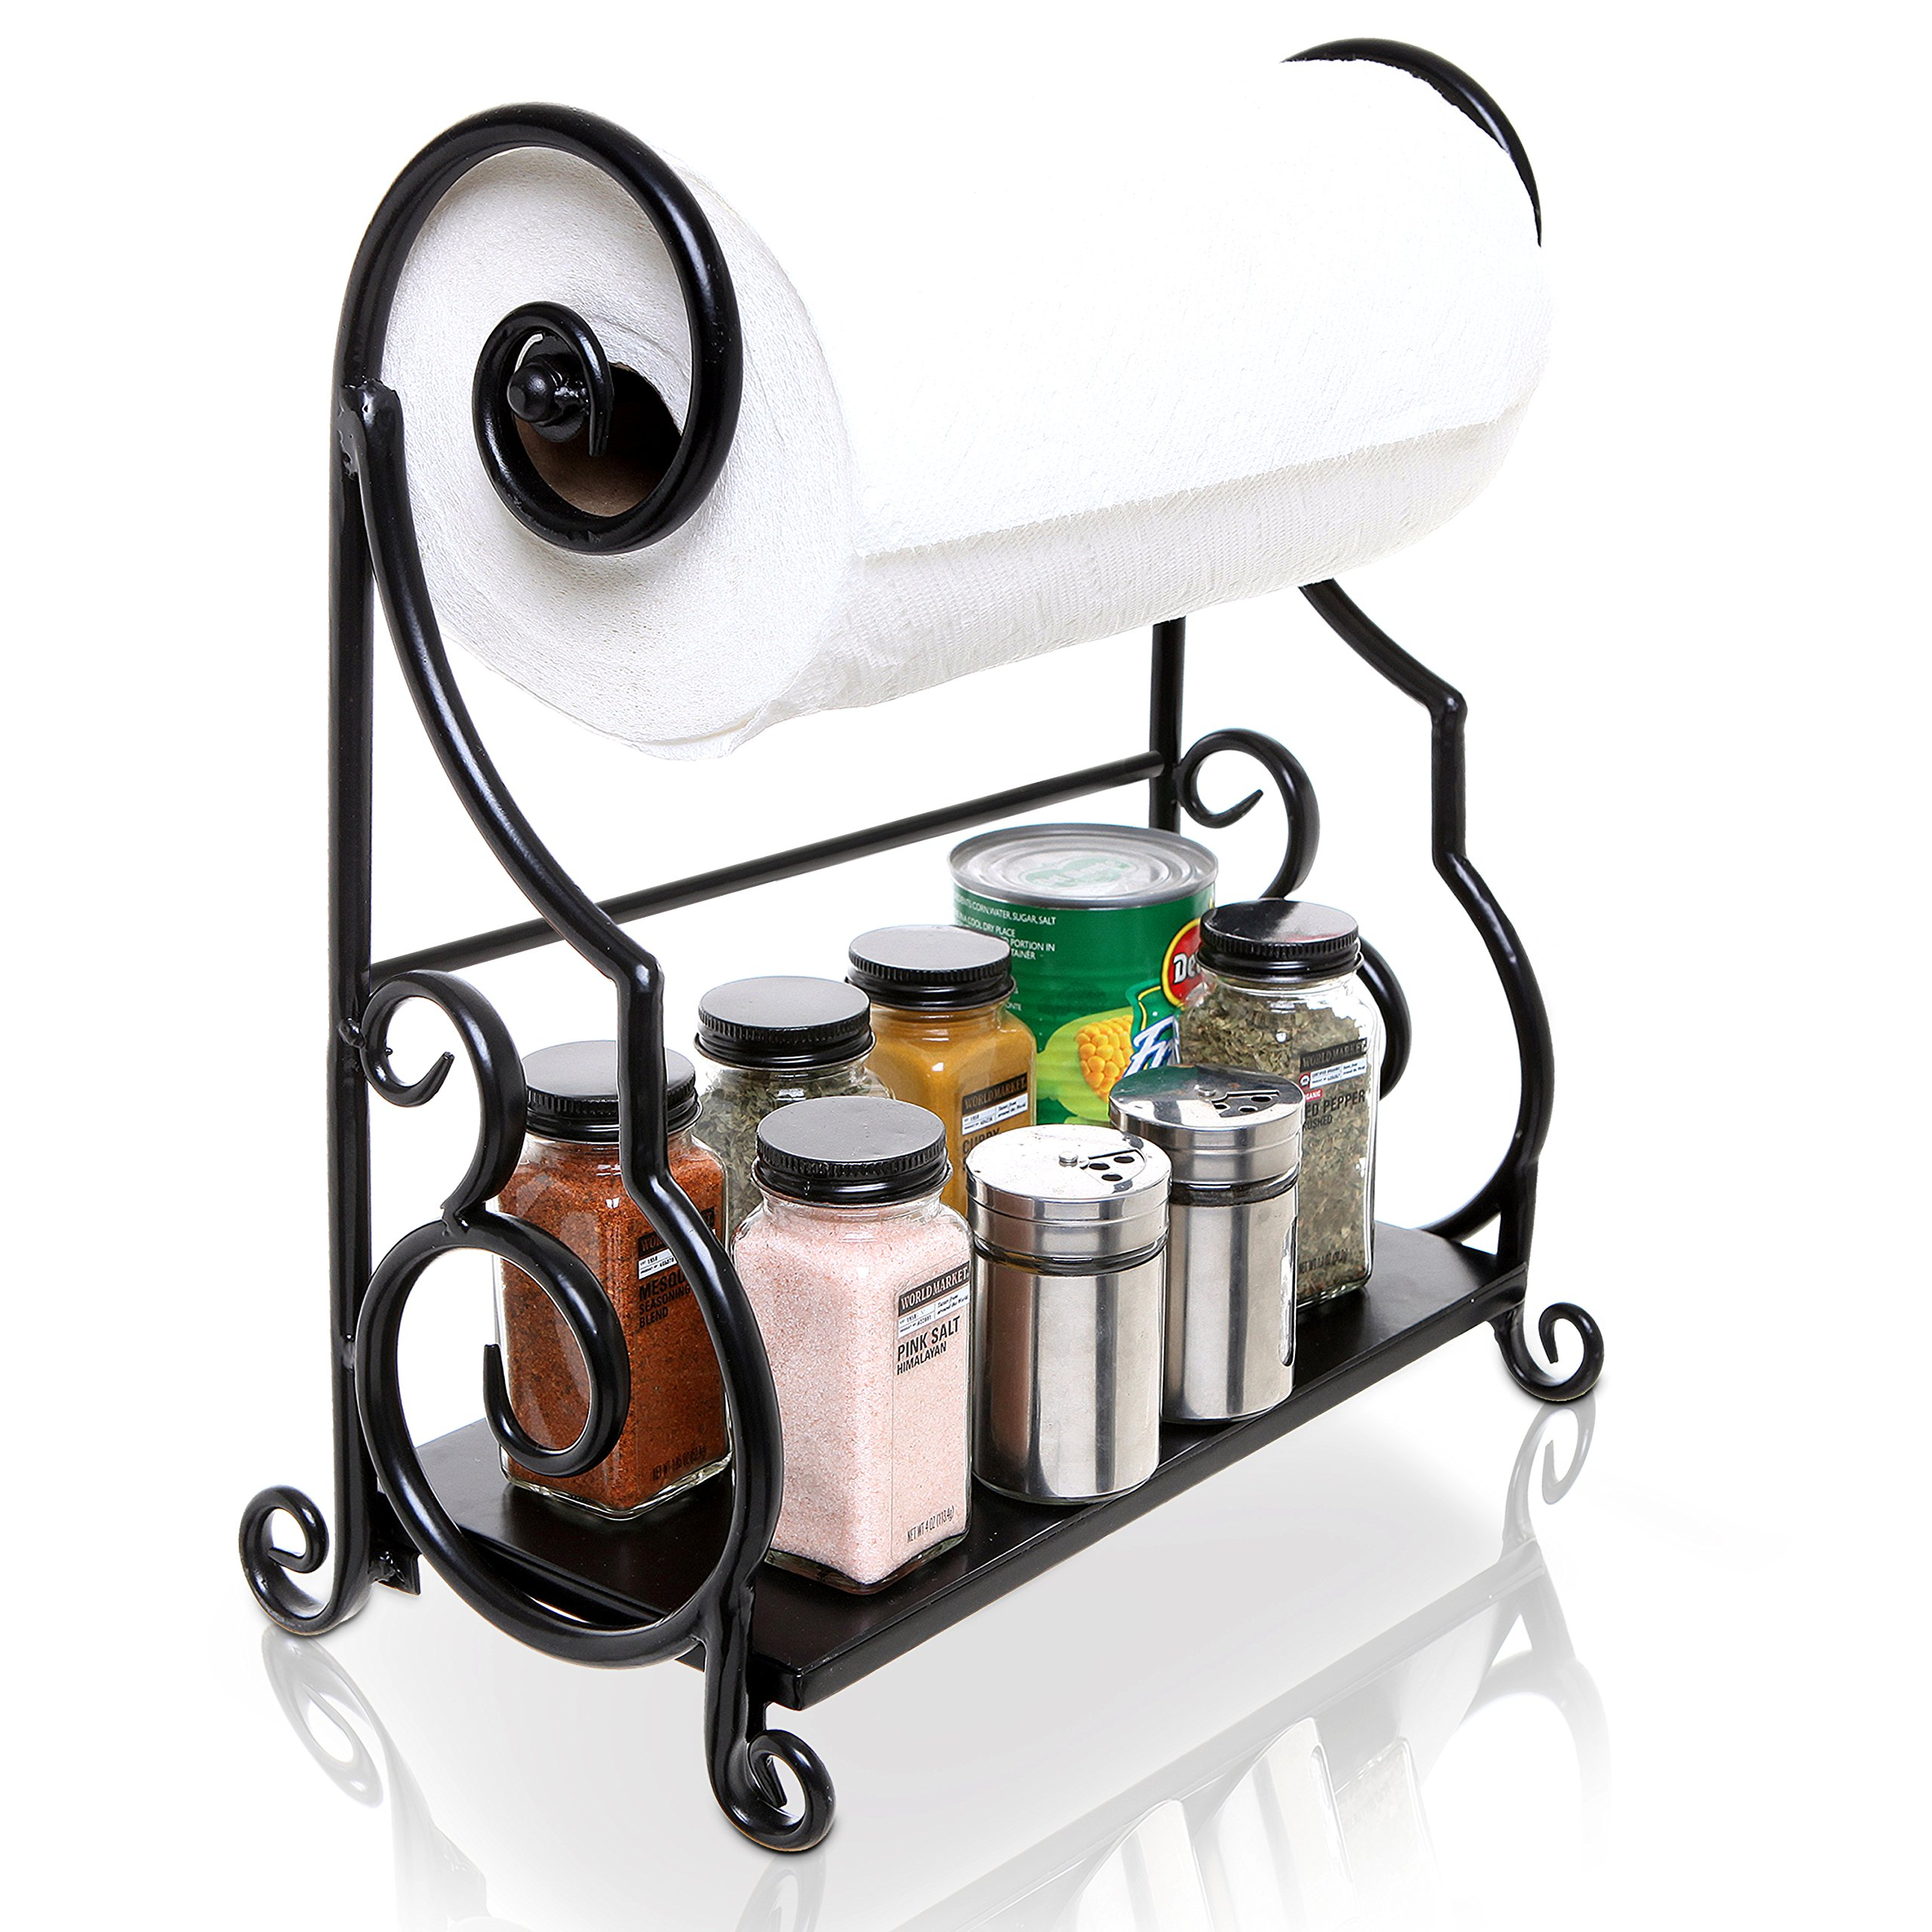 MyGift Black Metal Kitchen Countertop Paper Towel Holder Bar with Condiment Shelf Rack by MyGift